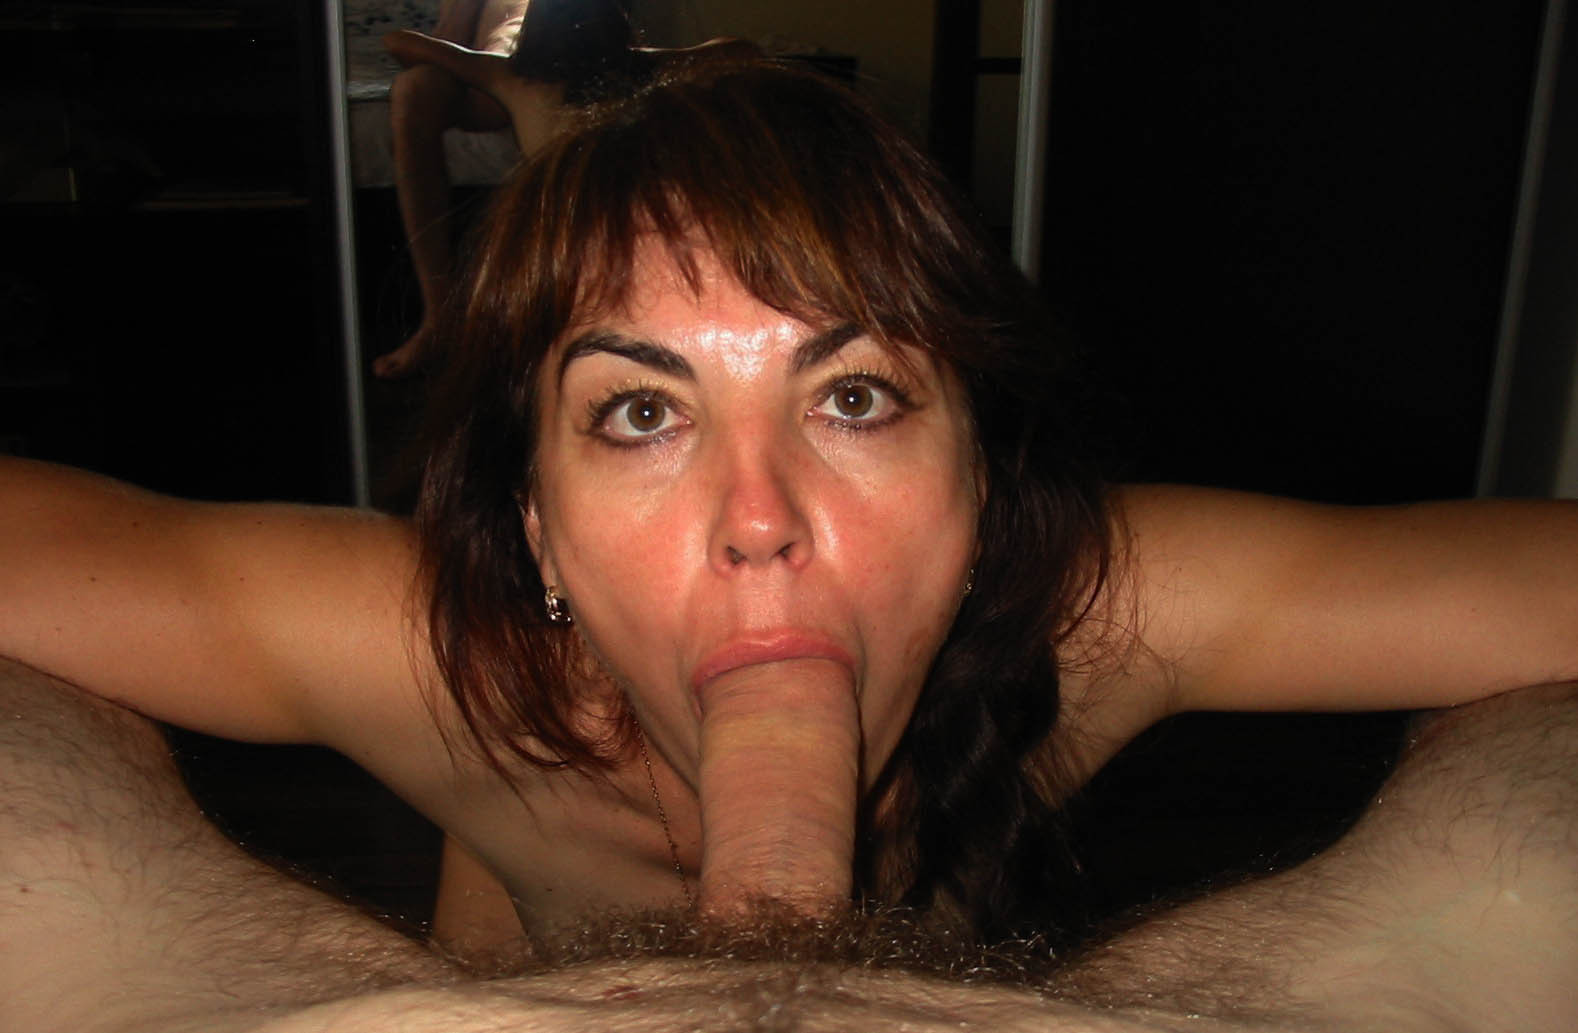 Blindfolded deepthroat pic galleries